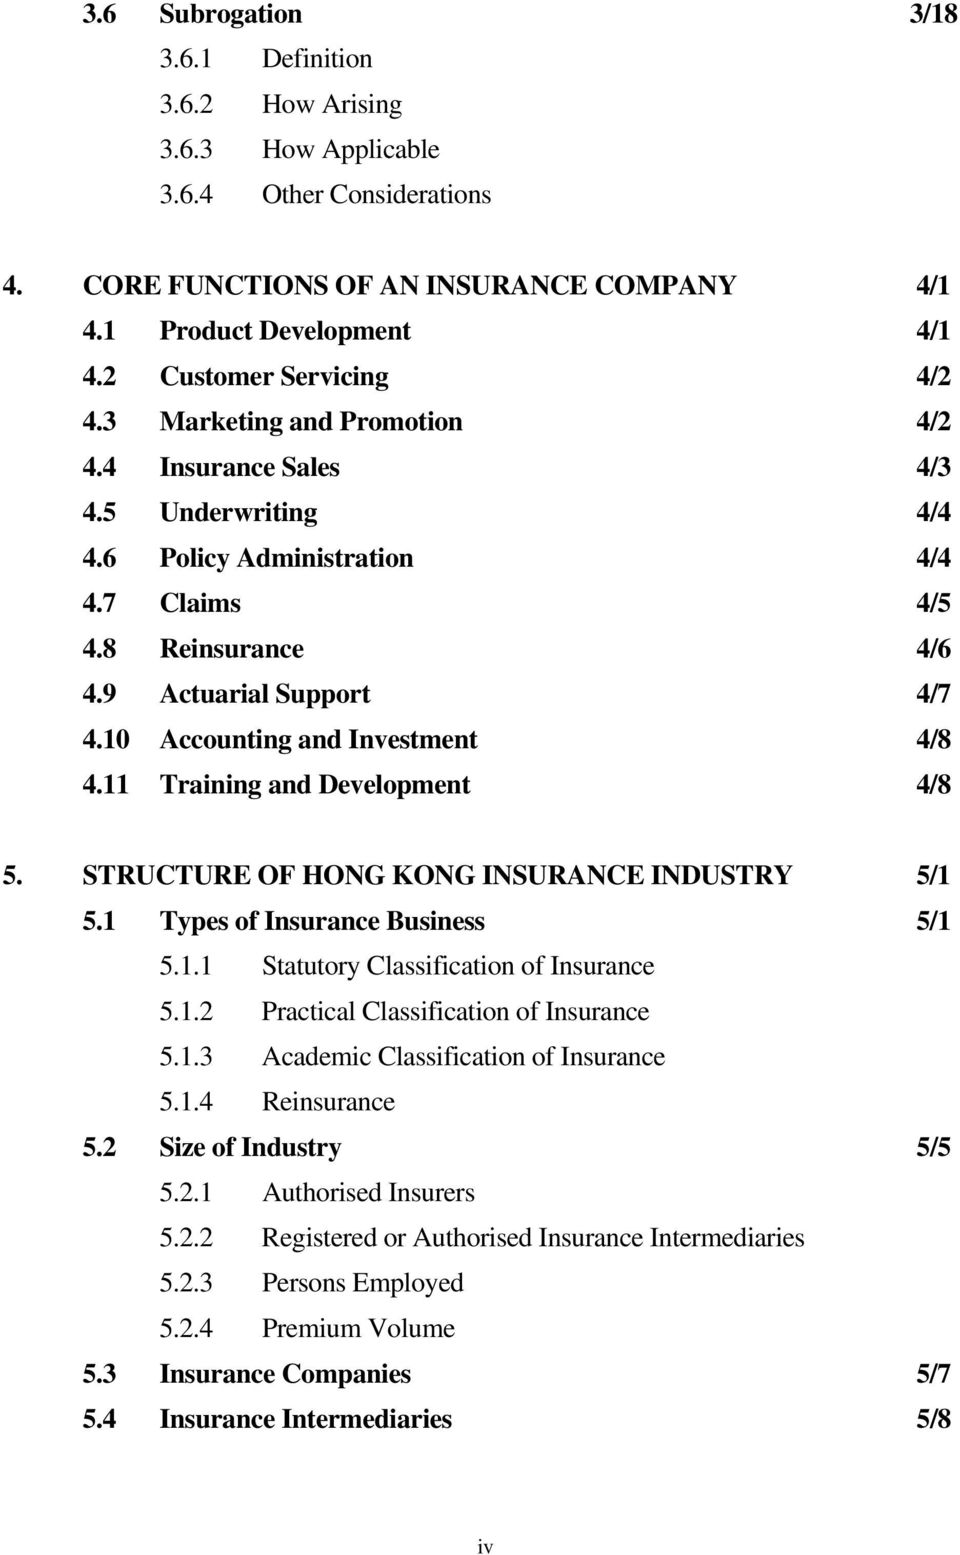 10 Accounting and Investment 4/8 4.11 Training and Development 4/8 5. STRUCTURE OF HONG KONG INSURANCE INDUSTRY 5/1 5.1 Types of Insurance Business 5/1 5.1.1 Statutory Classification of Insurance 5.1.2 Practical Classification of Insurance 5.